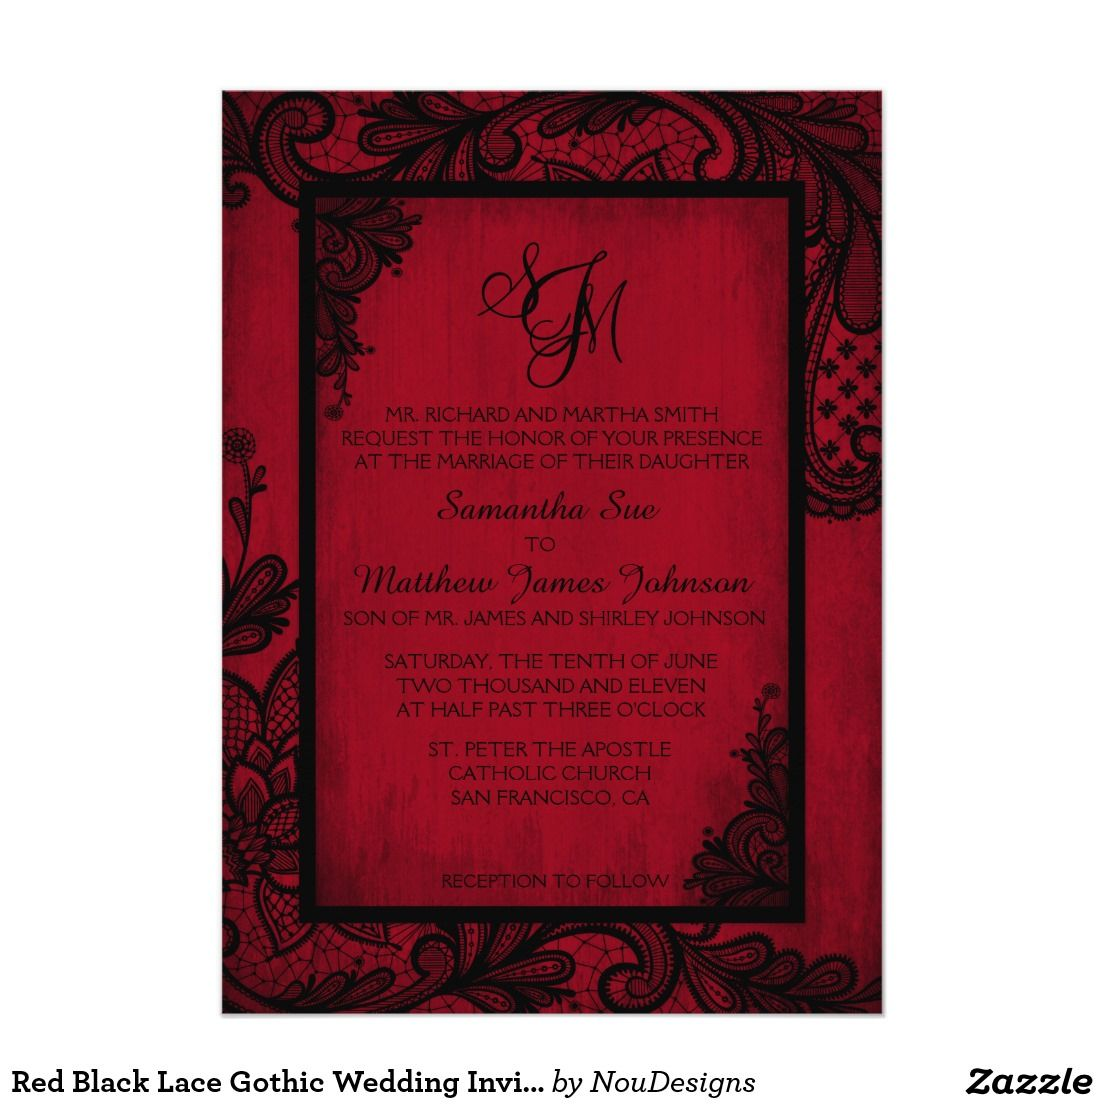 Red Black Lace Gothic Wedding Invitation Card | Gothic Romance ...